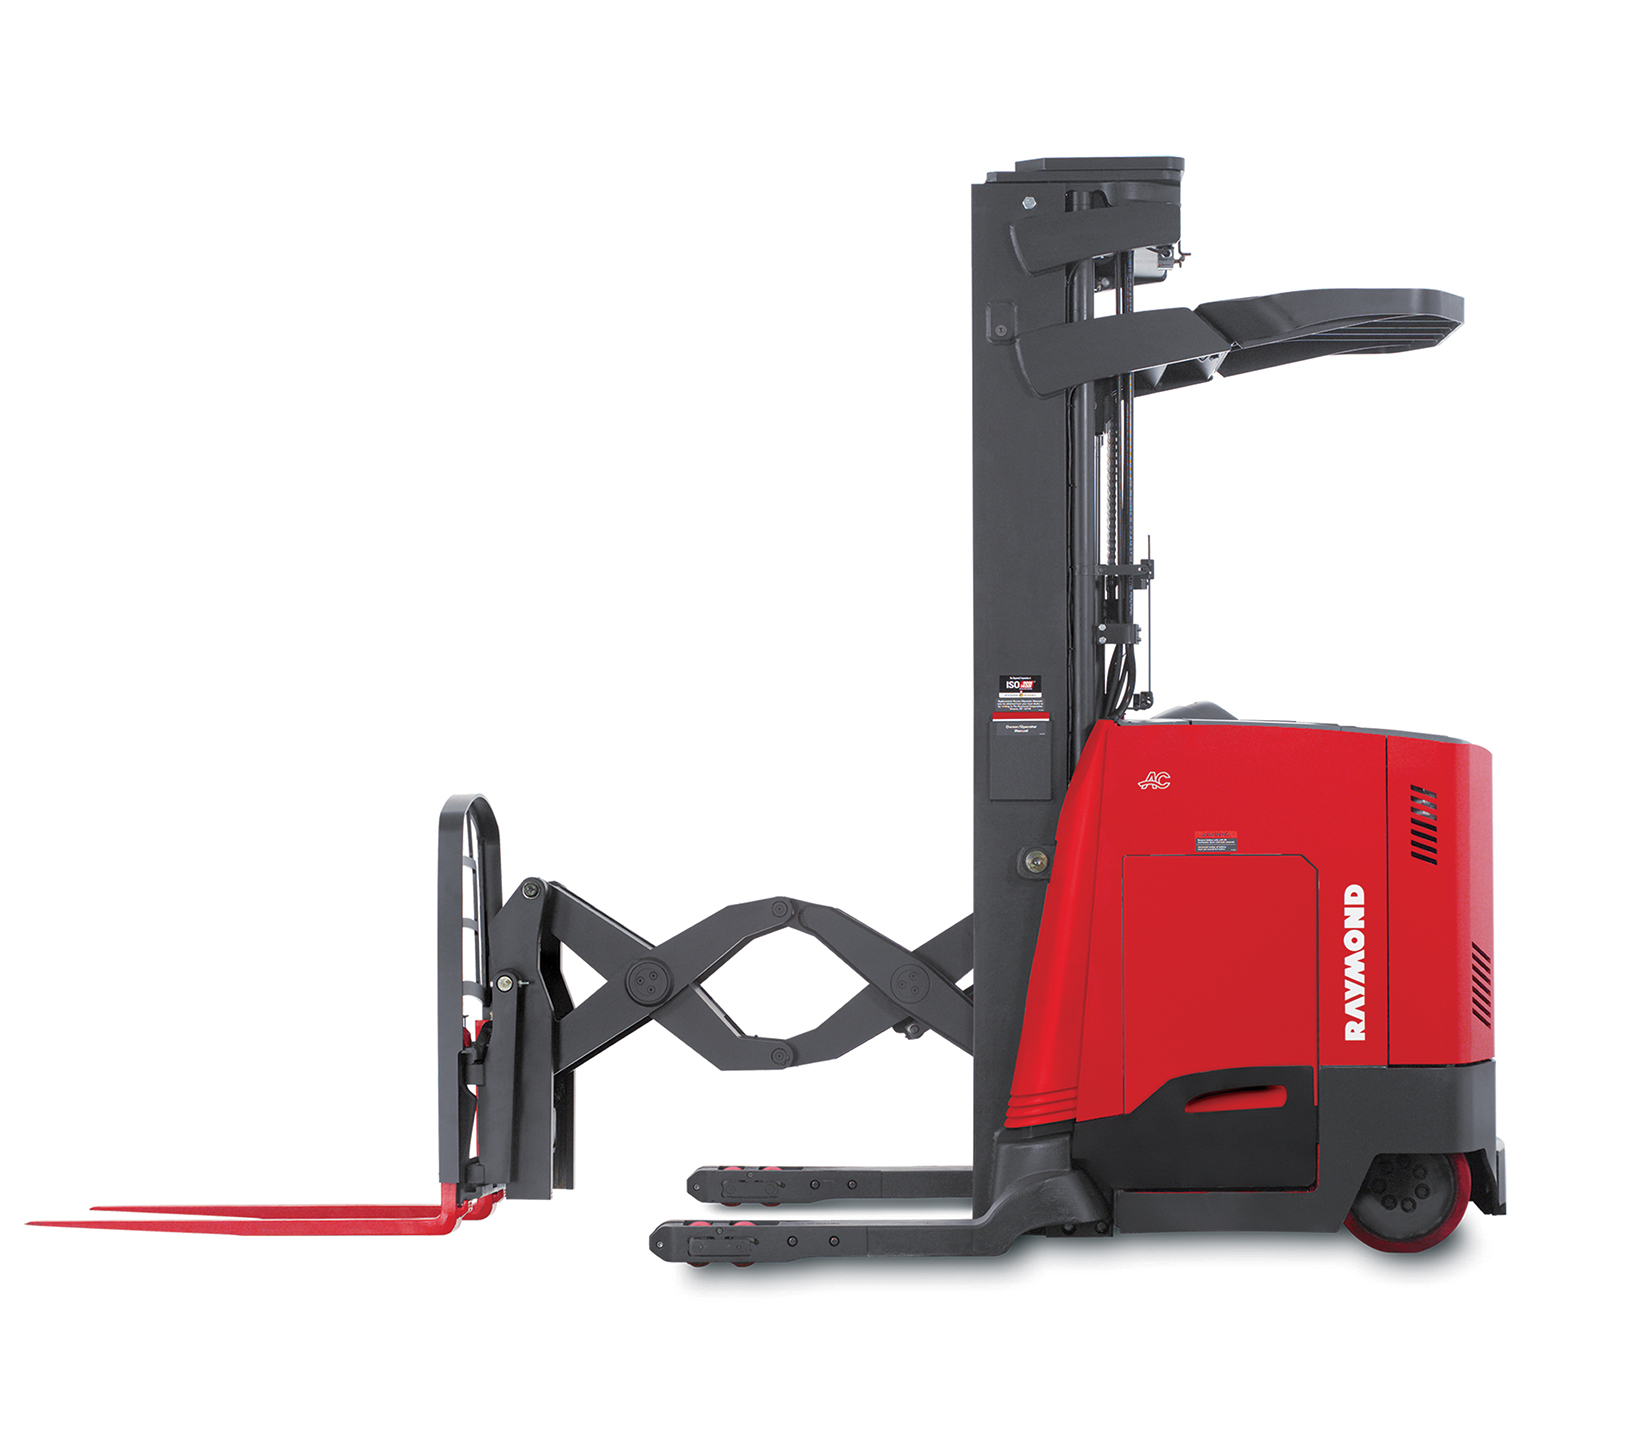 deep reach truck. Double tap to zoom